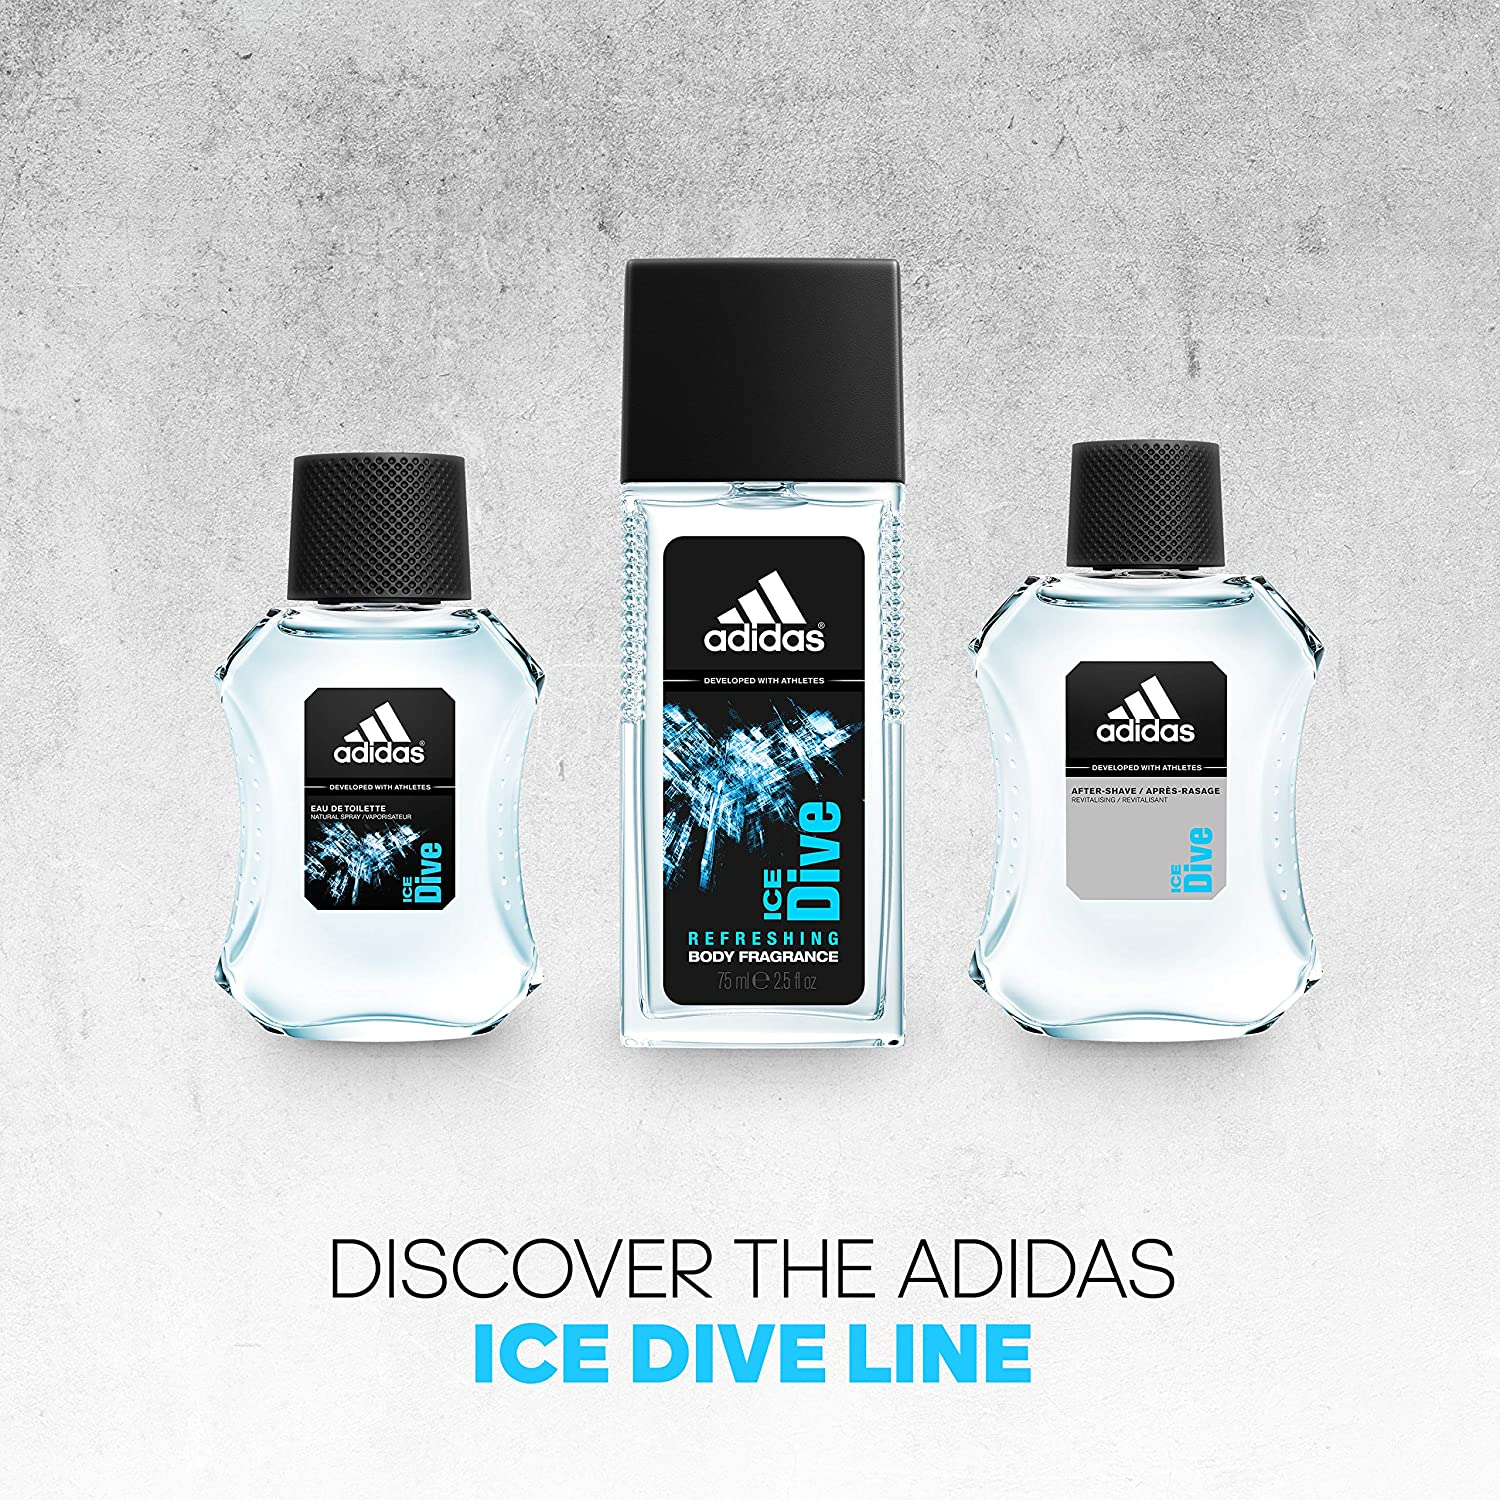 Aftershave 100 Ml Edt 50 Ml 1.7 Fl Oz Grade Products According To Quality 3.4 Fl Oz Adidas Dynamic Pulse